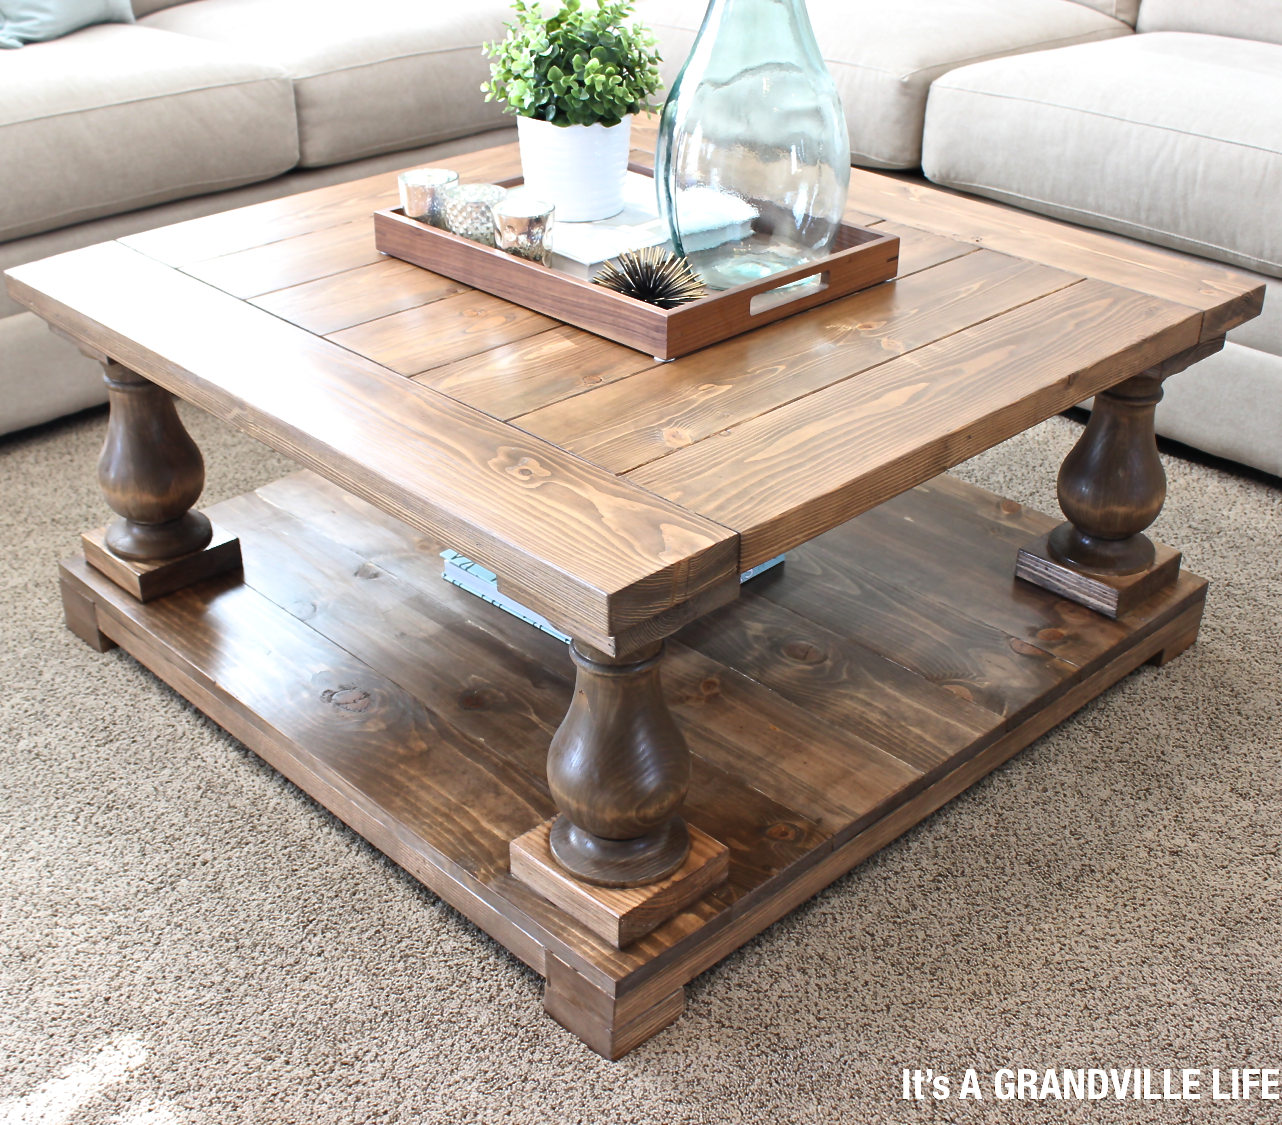 It s a grandville life diy balustrade coffee table